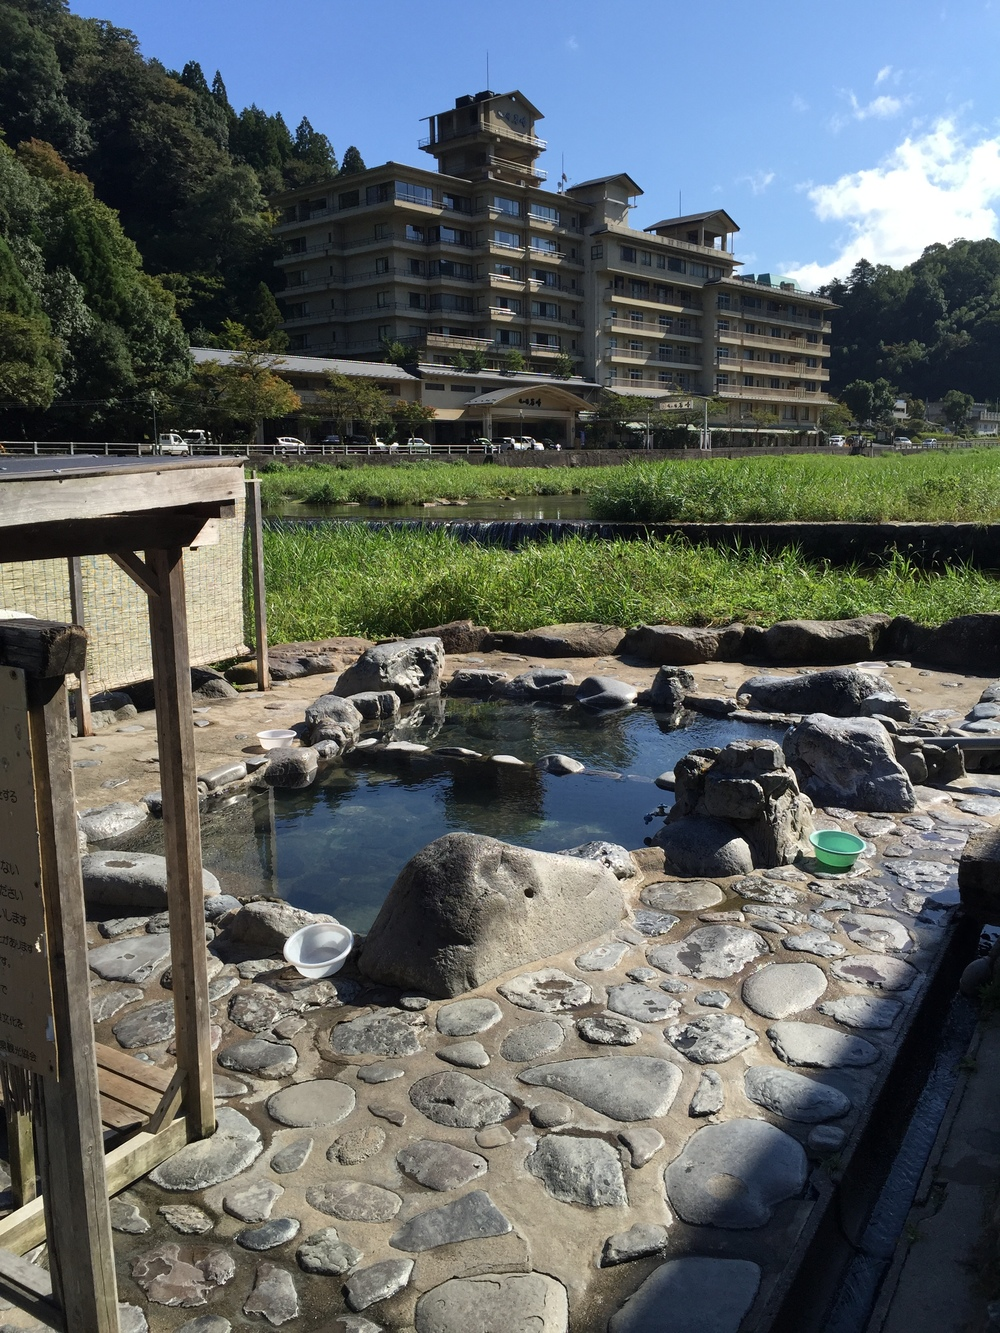 Public outdoor bath in Misasa Onsen